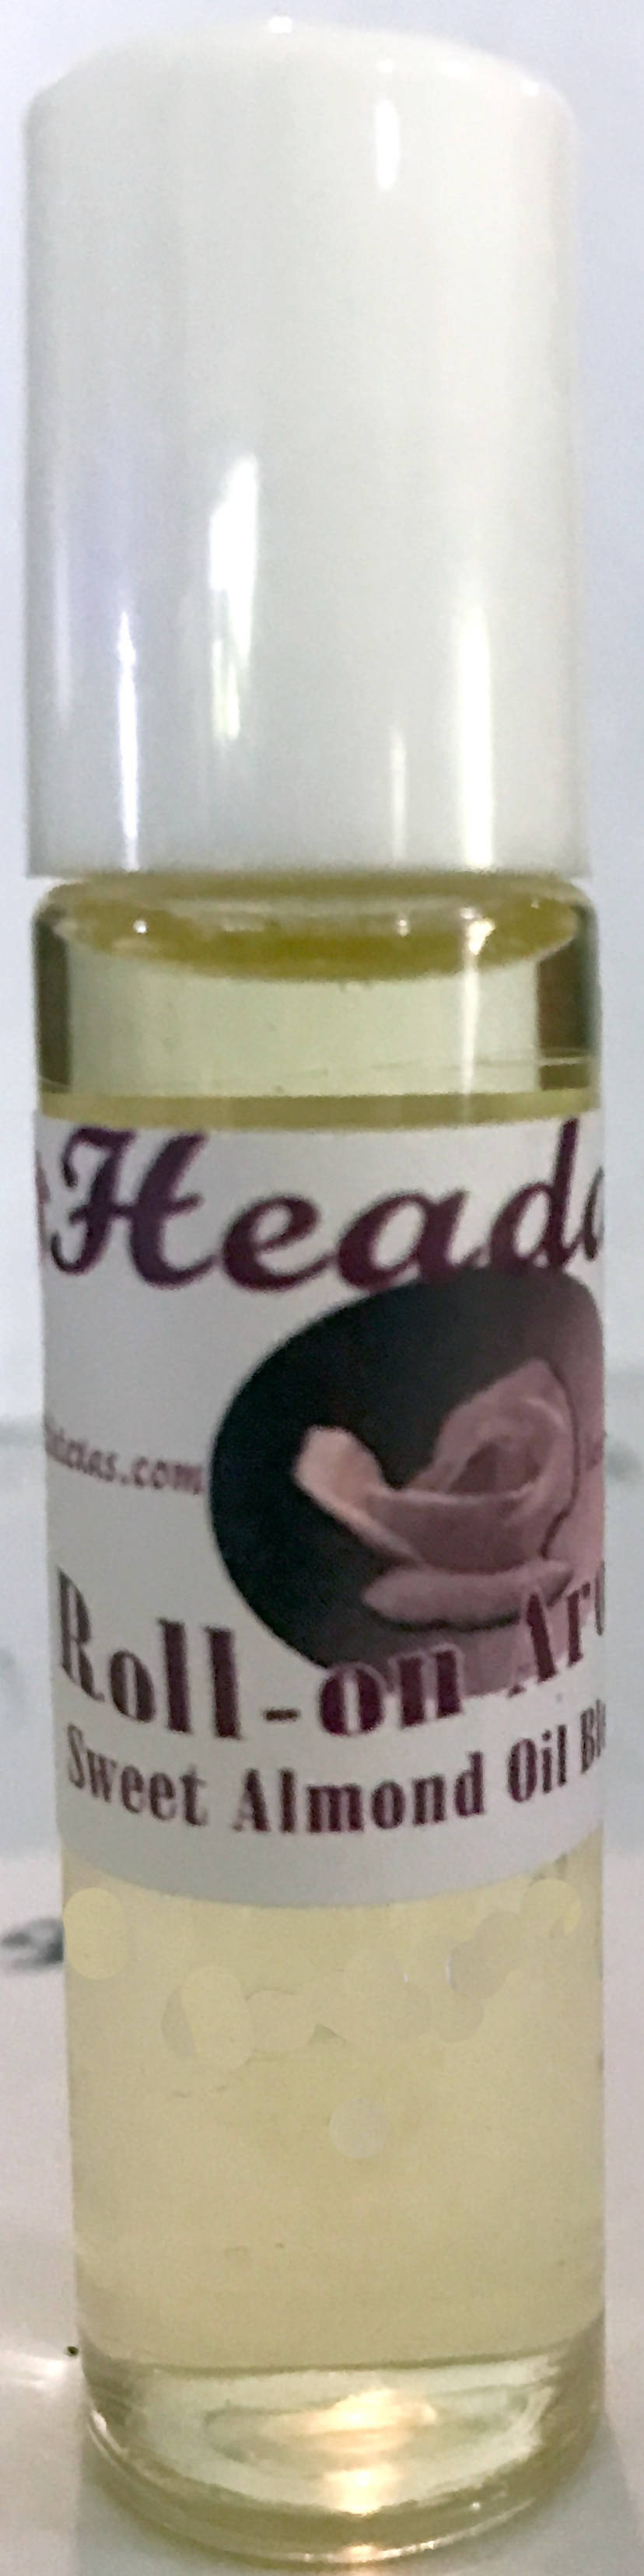 Headache Roll-on Aromas